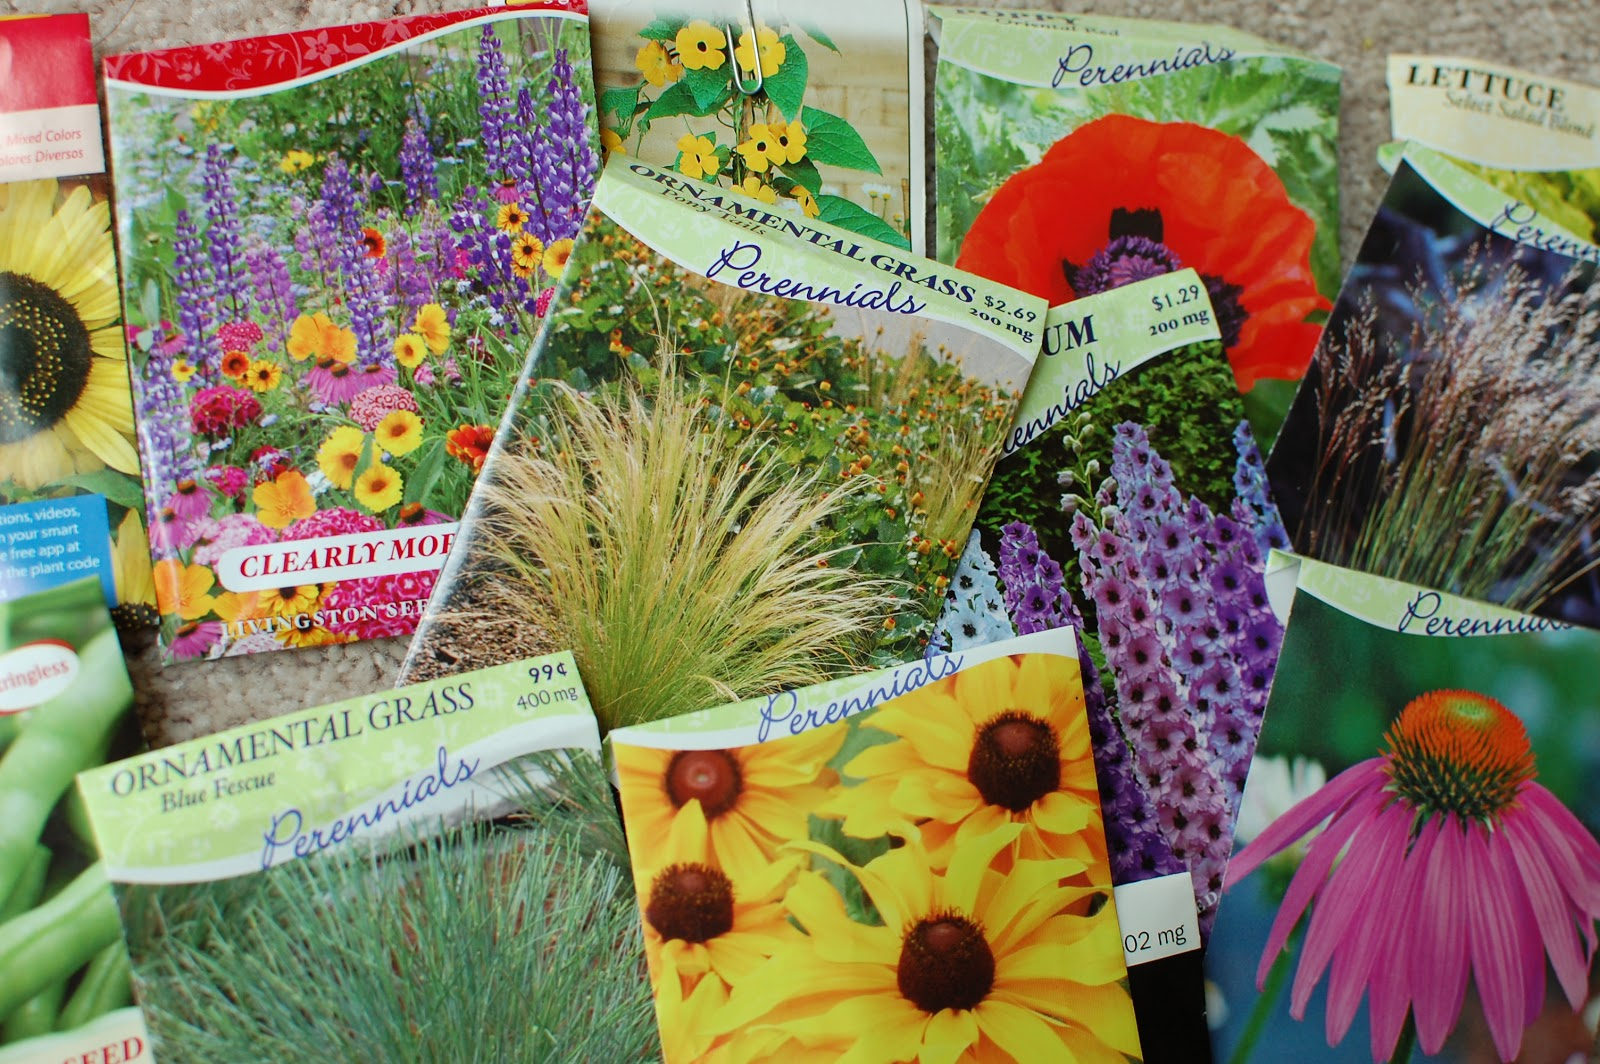 Sean And Katies Place Growing Perennials From Seed